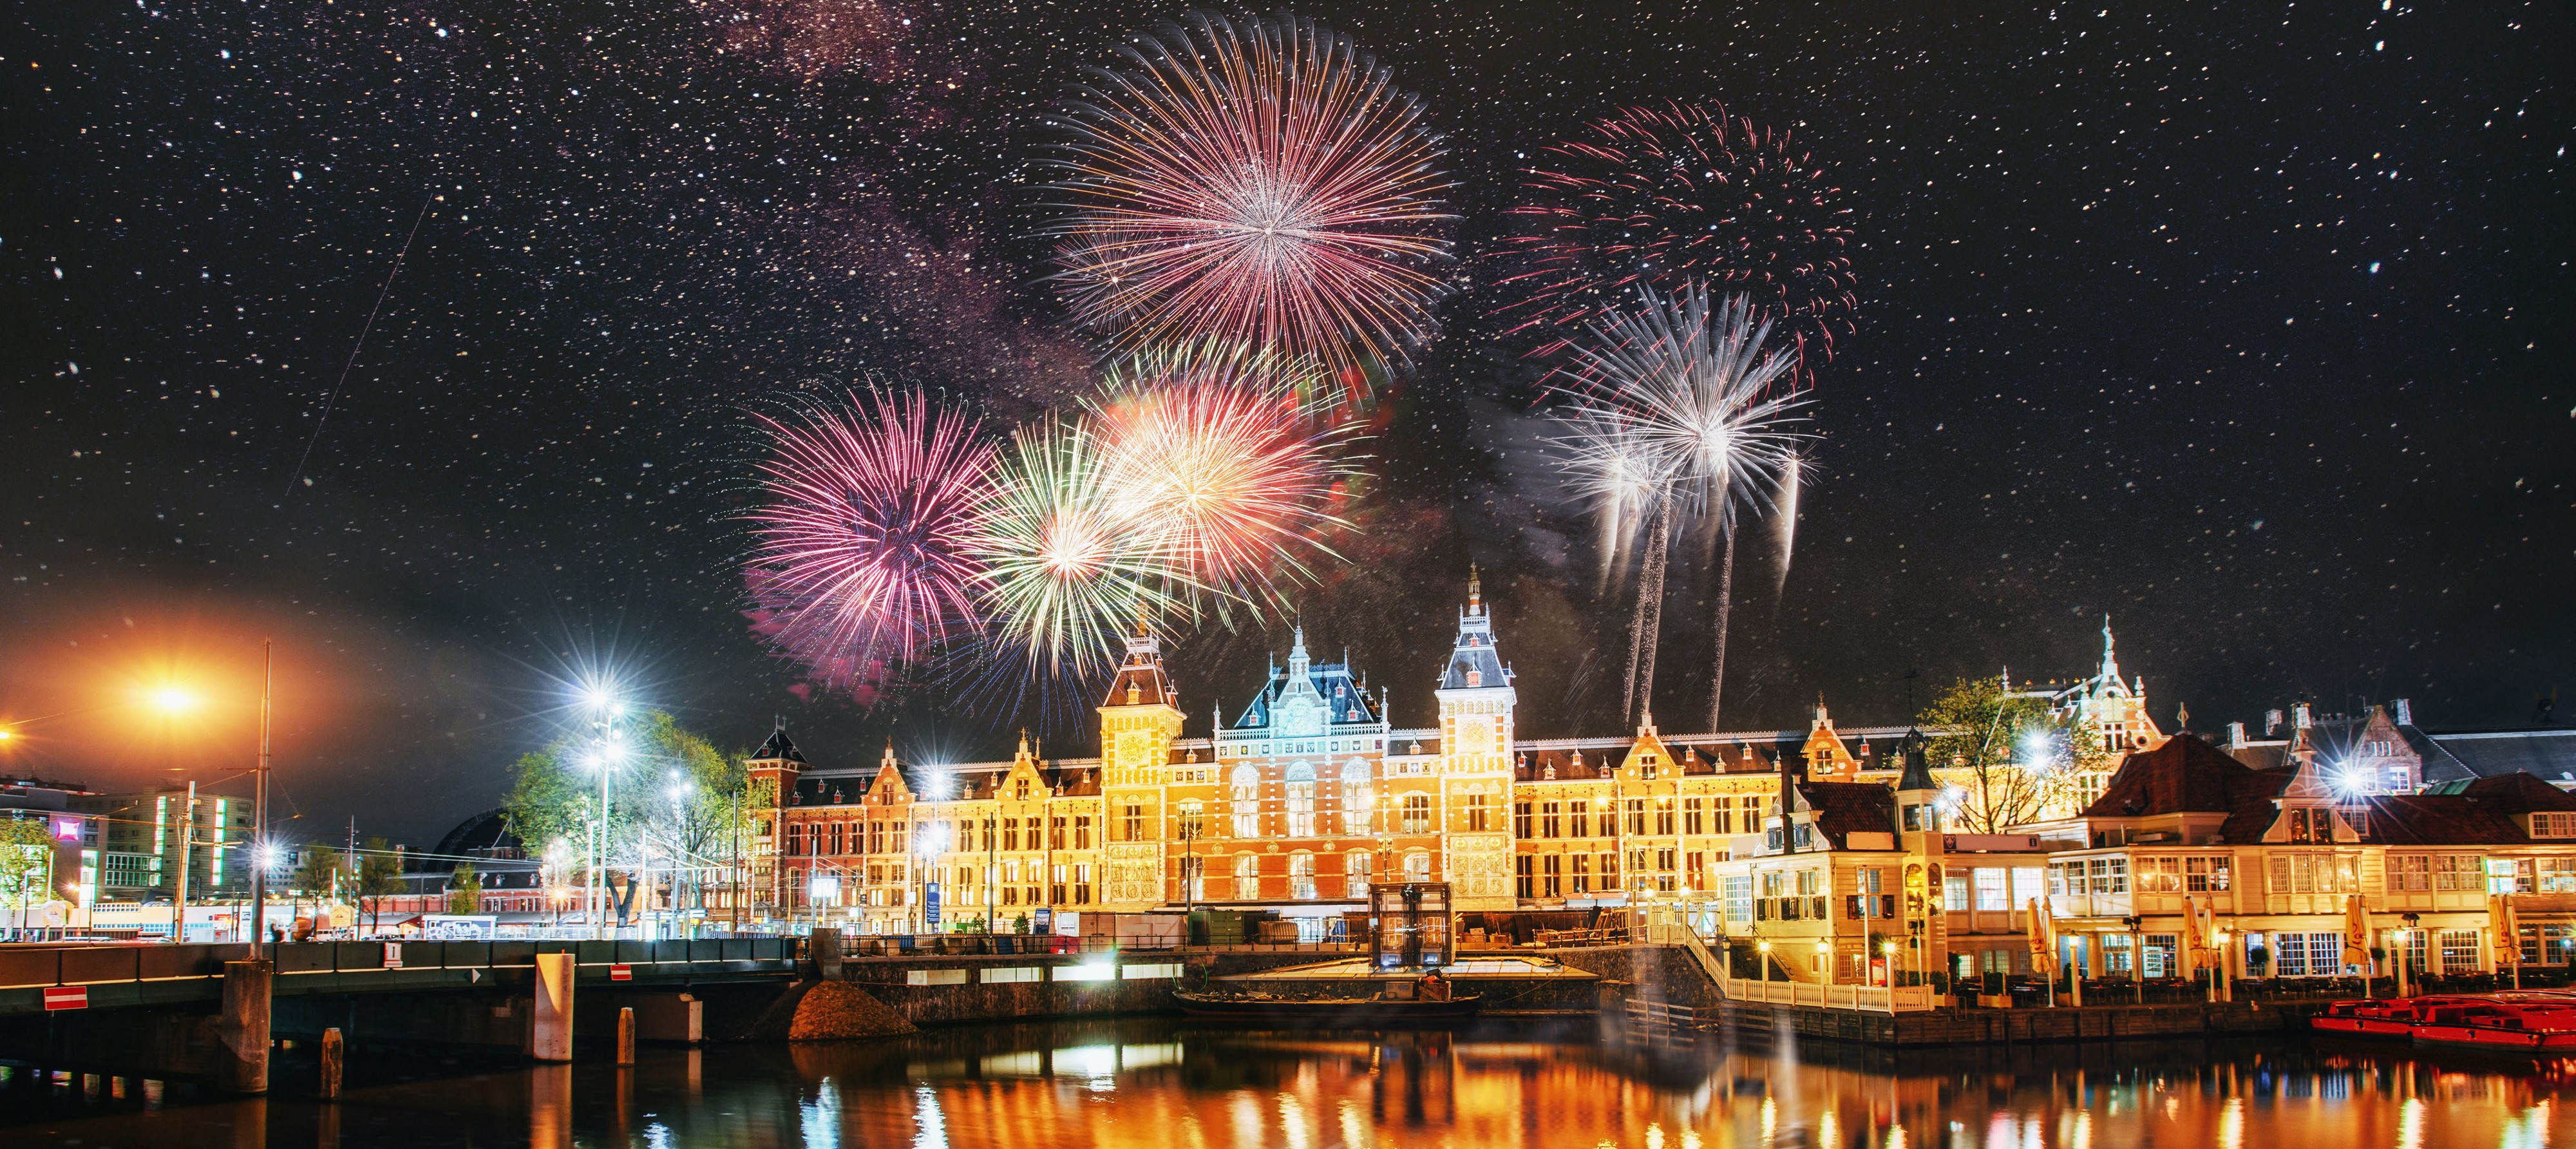 New Years Eve 2020 Events.Amsterdam New Years Eve 2020 New Years Eve Amsterdam 2020